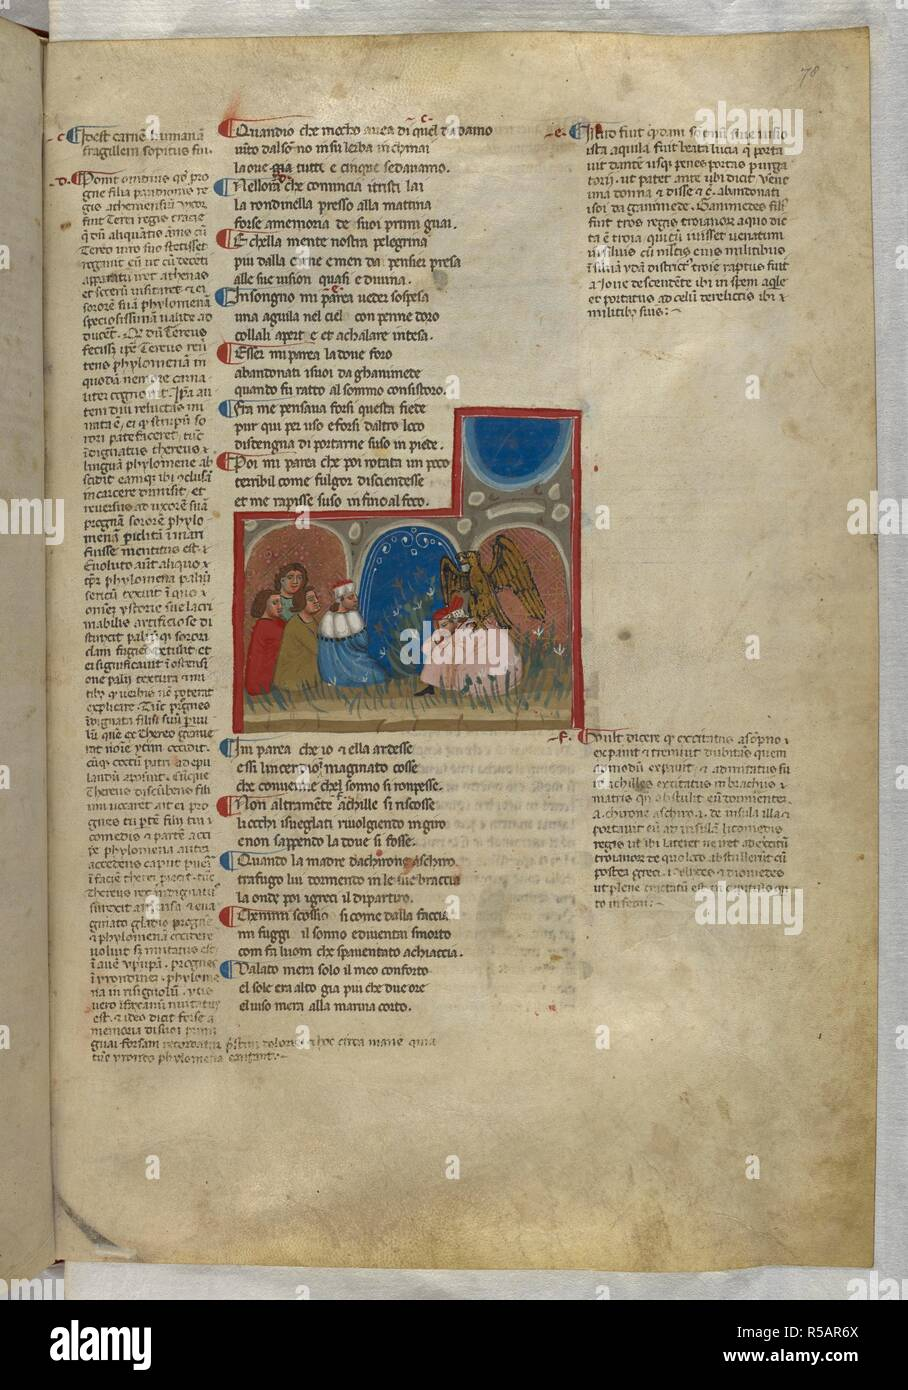 Purgatorio: The sleeping Dante is grasped by an eagle. Dante Alighieri, Divina Commedia ( The Divine Comedy ), with a commentary in Latin. 1st half of the 14th century. Source: Egerton 943, f.78. Language: Italian, Latin. - Stock Image